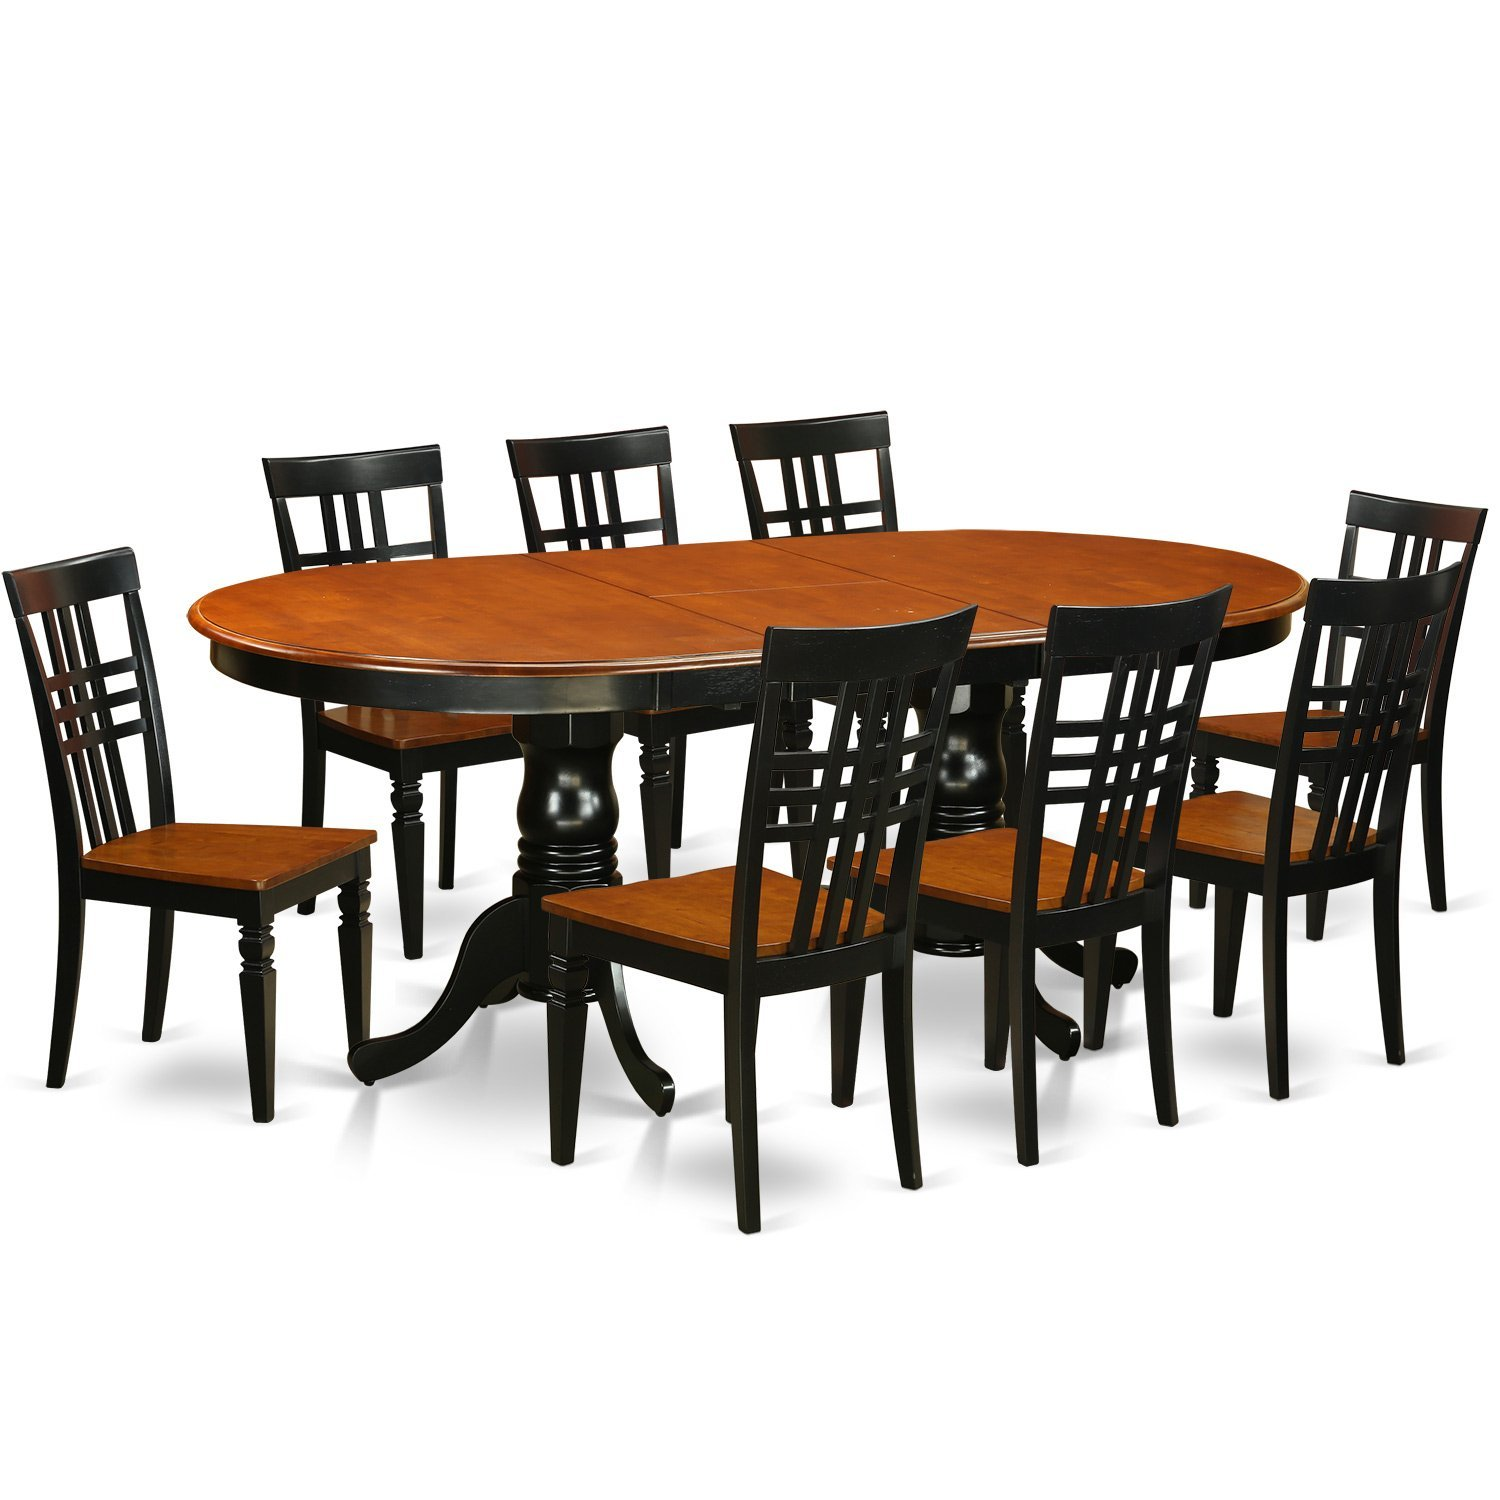 East West Furniture PVLG9 BCH W 9Piece Table U0026 Chair Set With One  Plainville Table U0026 8 Dining Chairs In Black U0026 Cherry Finish. 1111.11. 7  Piece ...